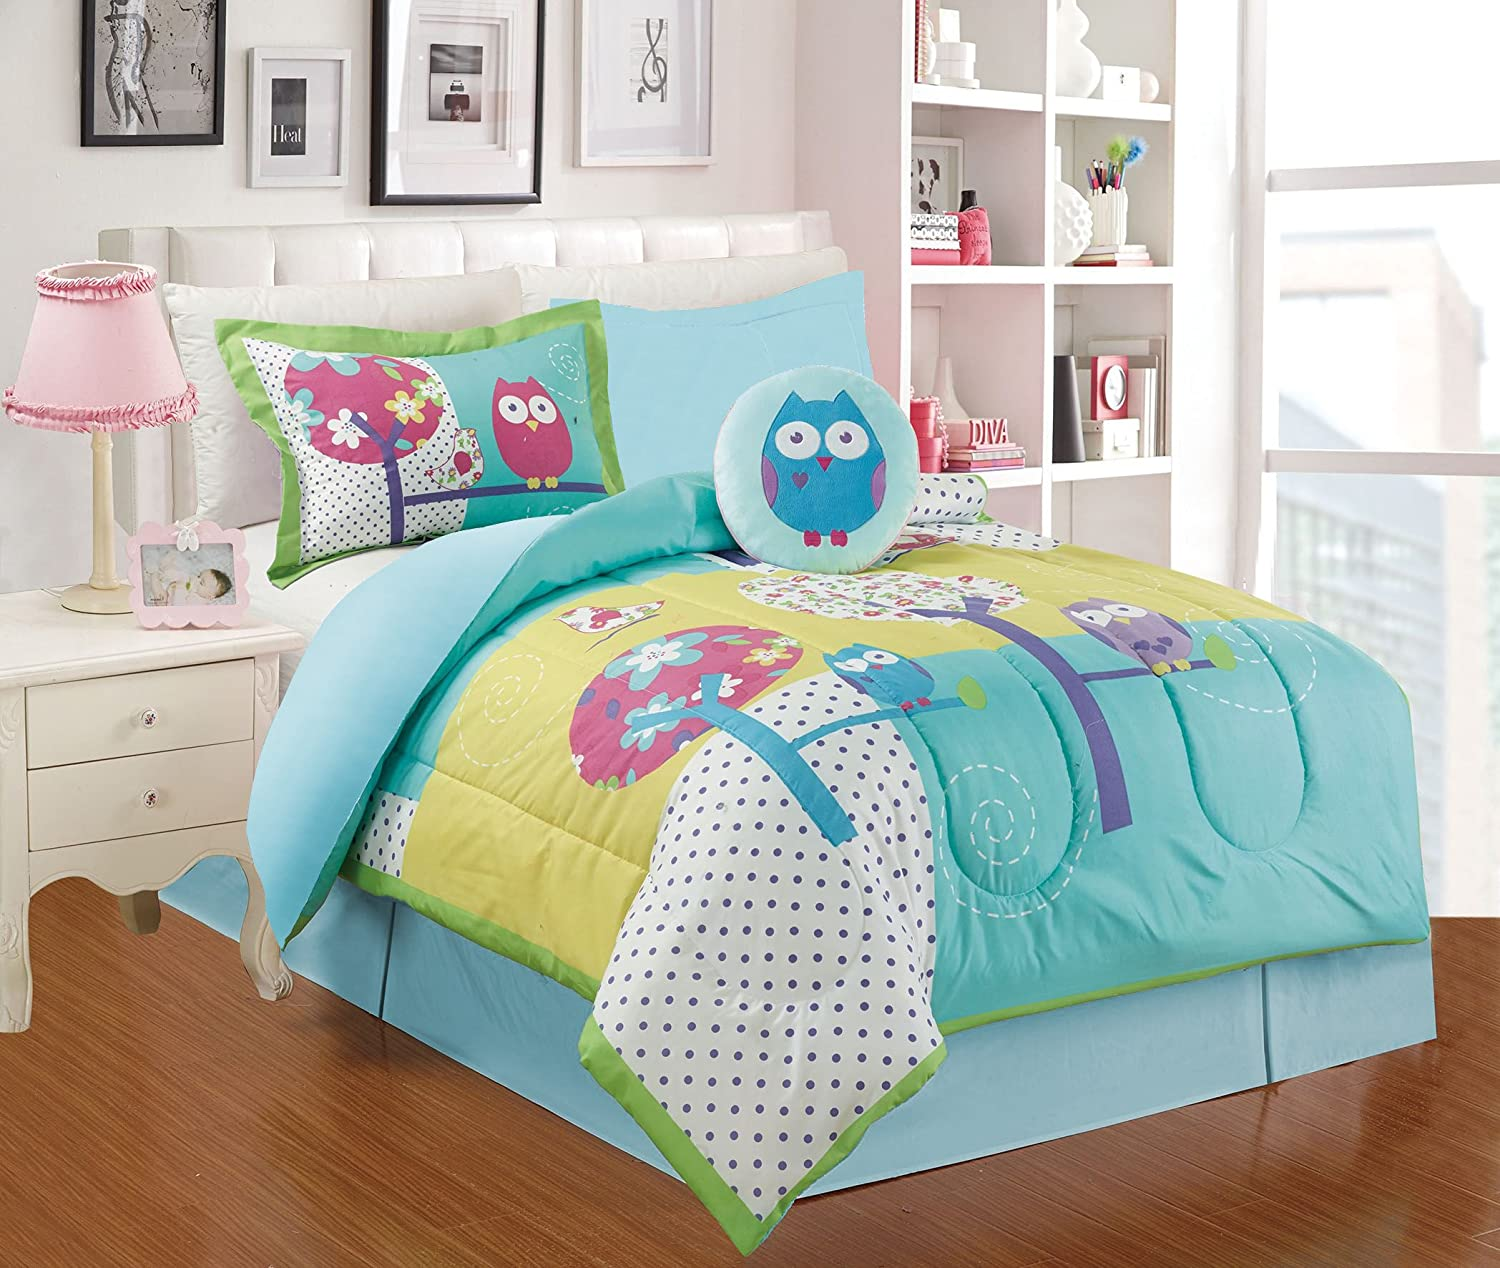 All American Collection 4 Piece Twin Size Owl Comforter Set with Bed-skirt